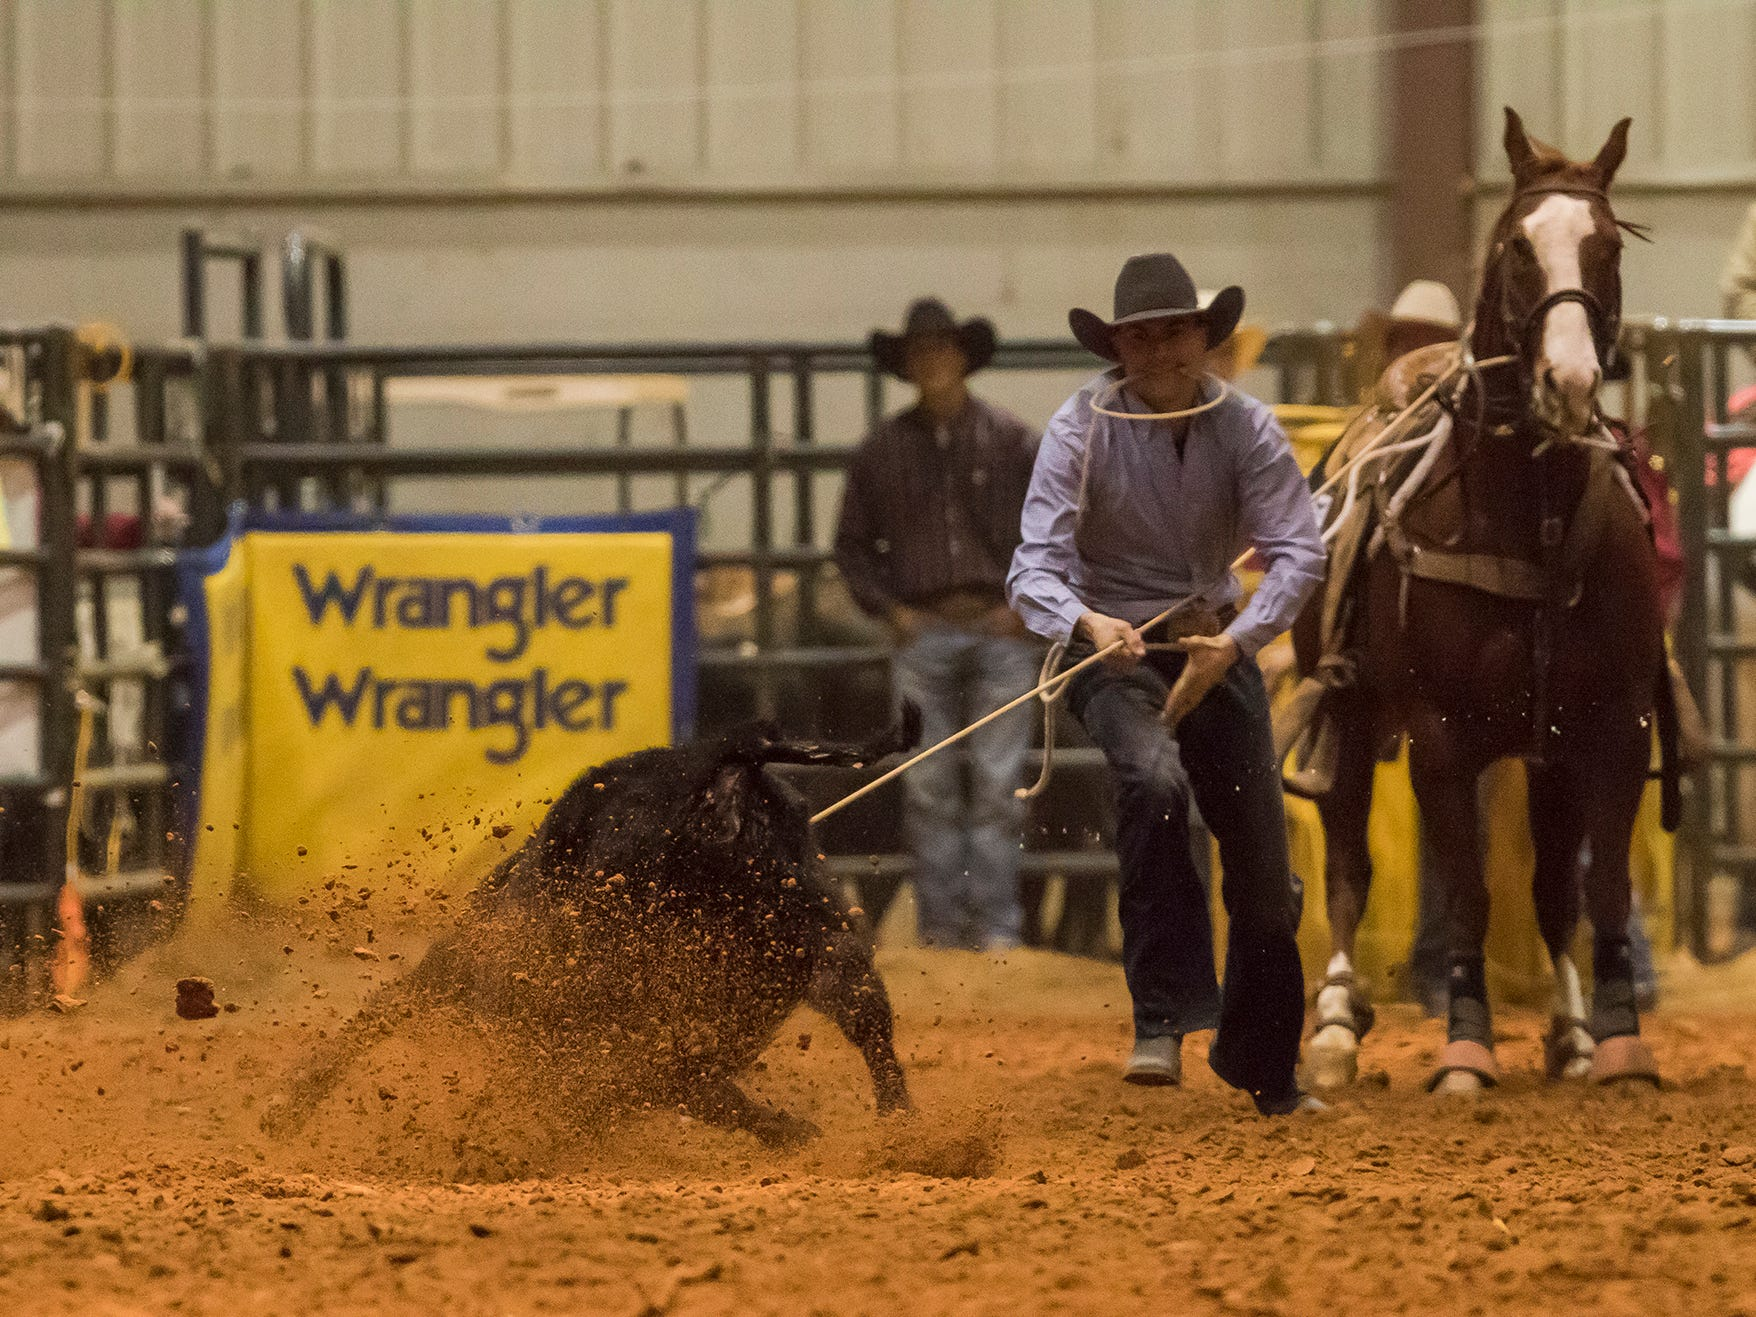 The Pete Carr Classic Pro Rodeo visited the Ike Hamilton Expo Center in West Monroe, La. for the 2019 Stampede at the Ike on Jan. 12.